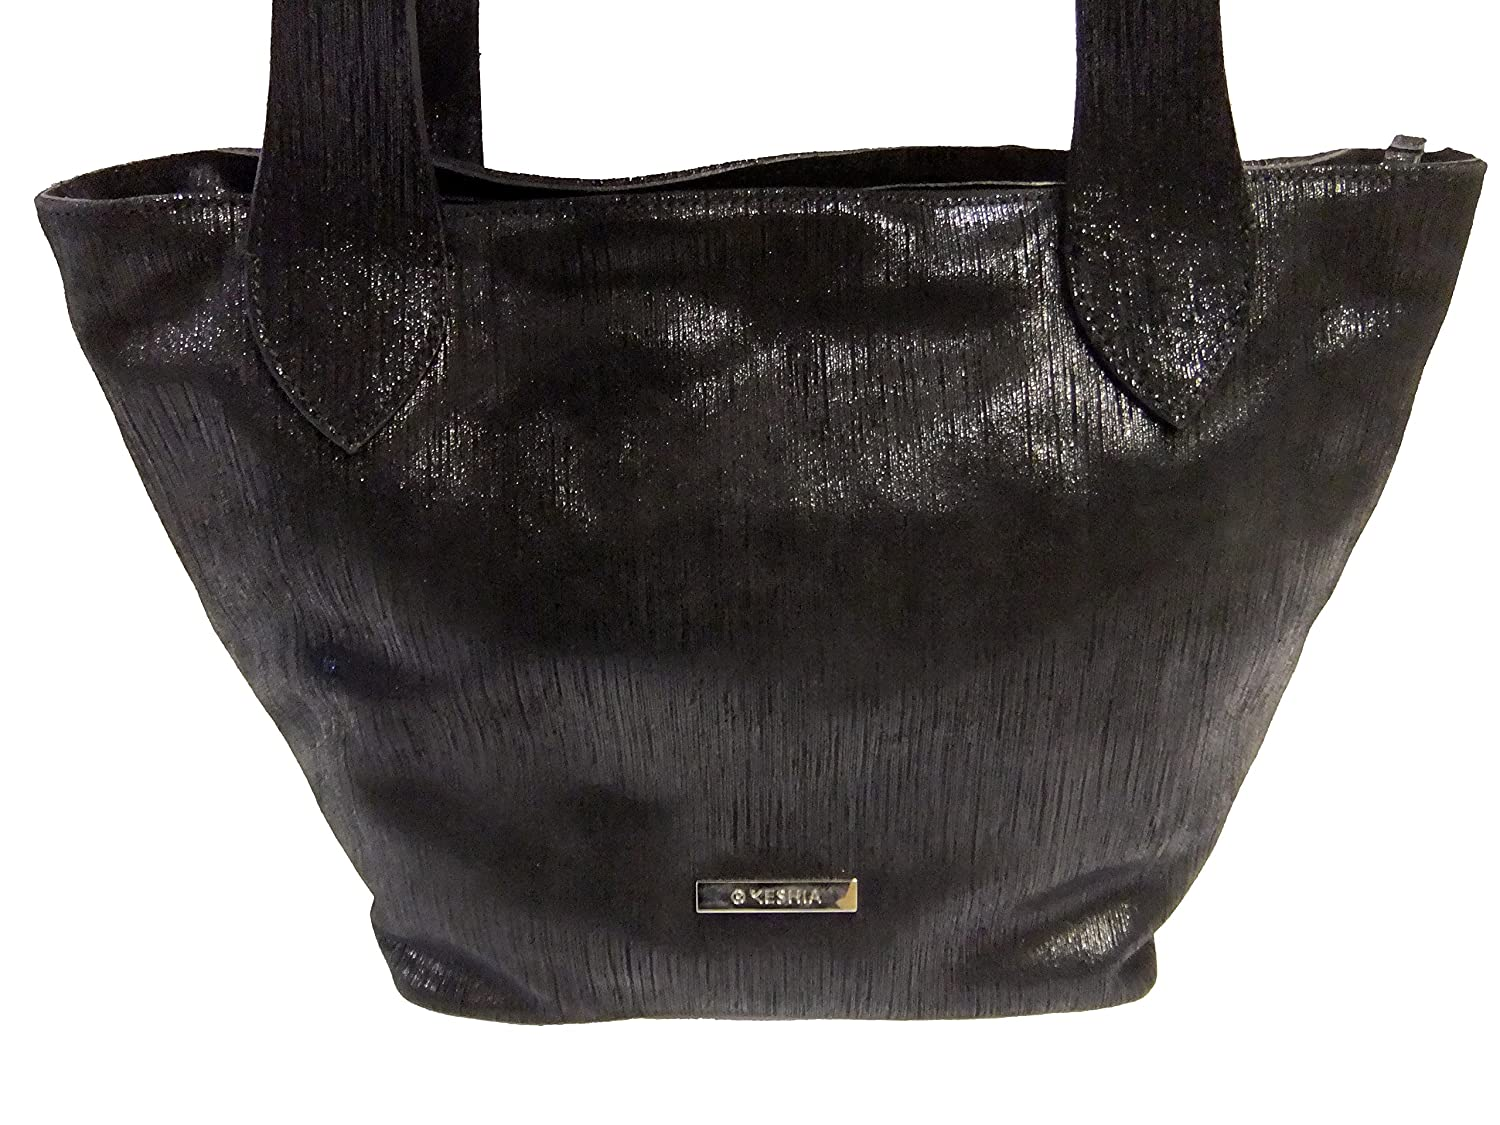 858c236eb1 Keshia Women's Shoulder Bag black BLACK: Amazon.co.uk: Luggage